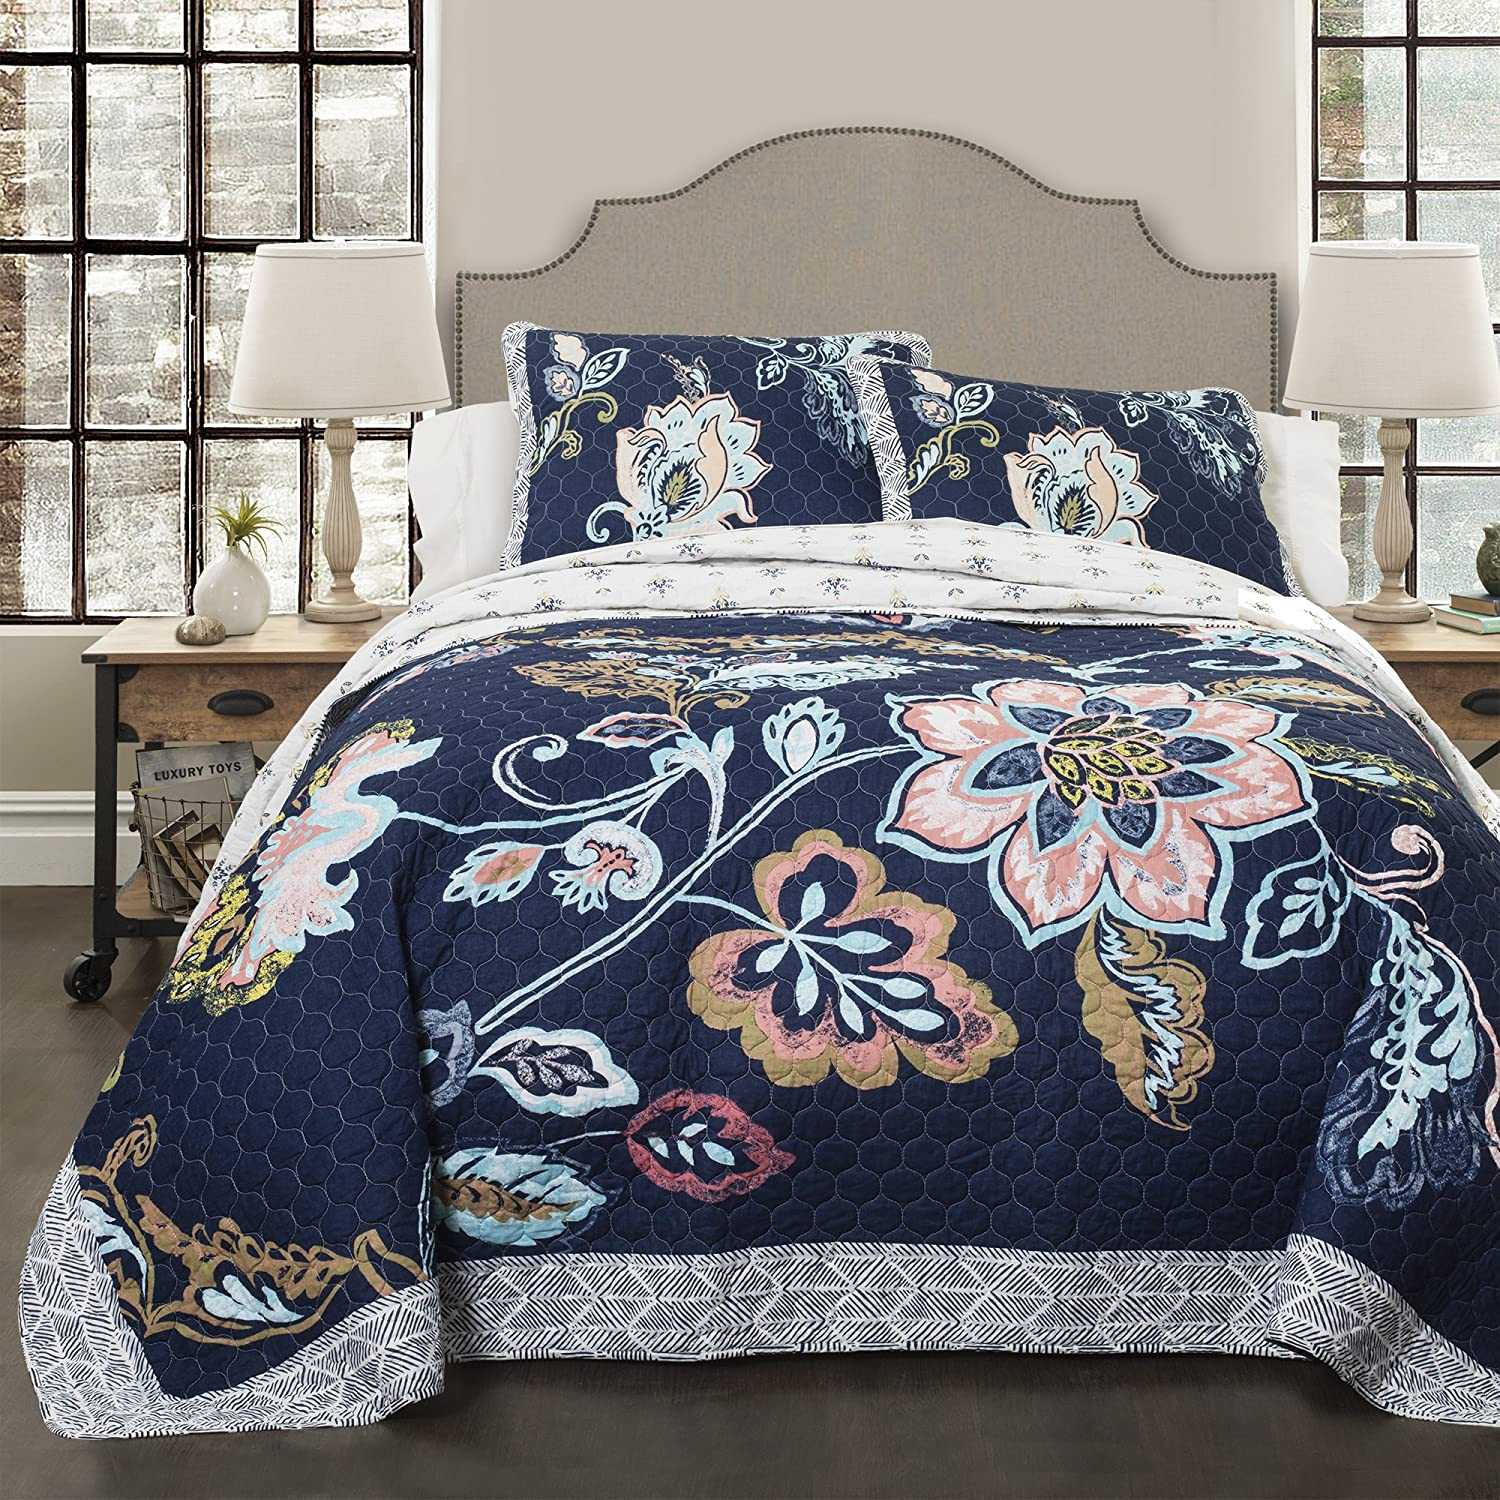 Lush Decor Aster Quilt Flower Pattern Reversible Navy 3 Piece Lightweight Bedding Set, King Blanket Bedspread,